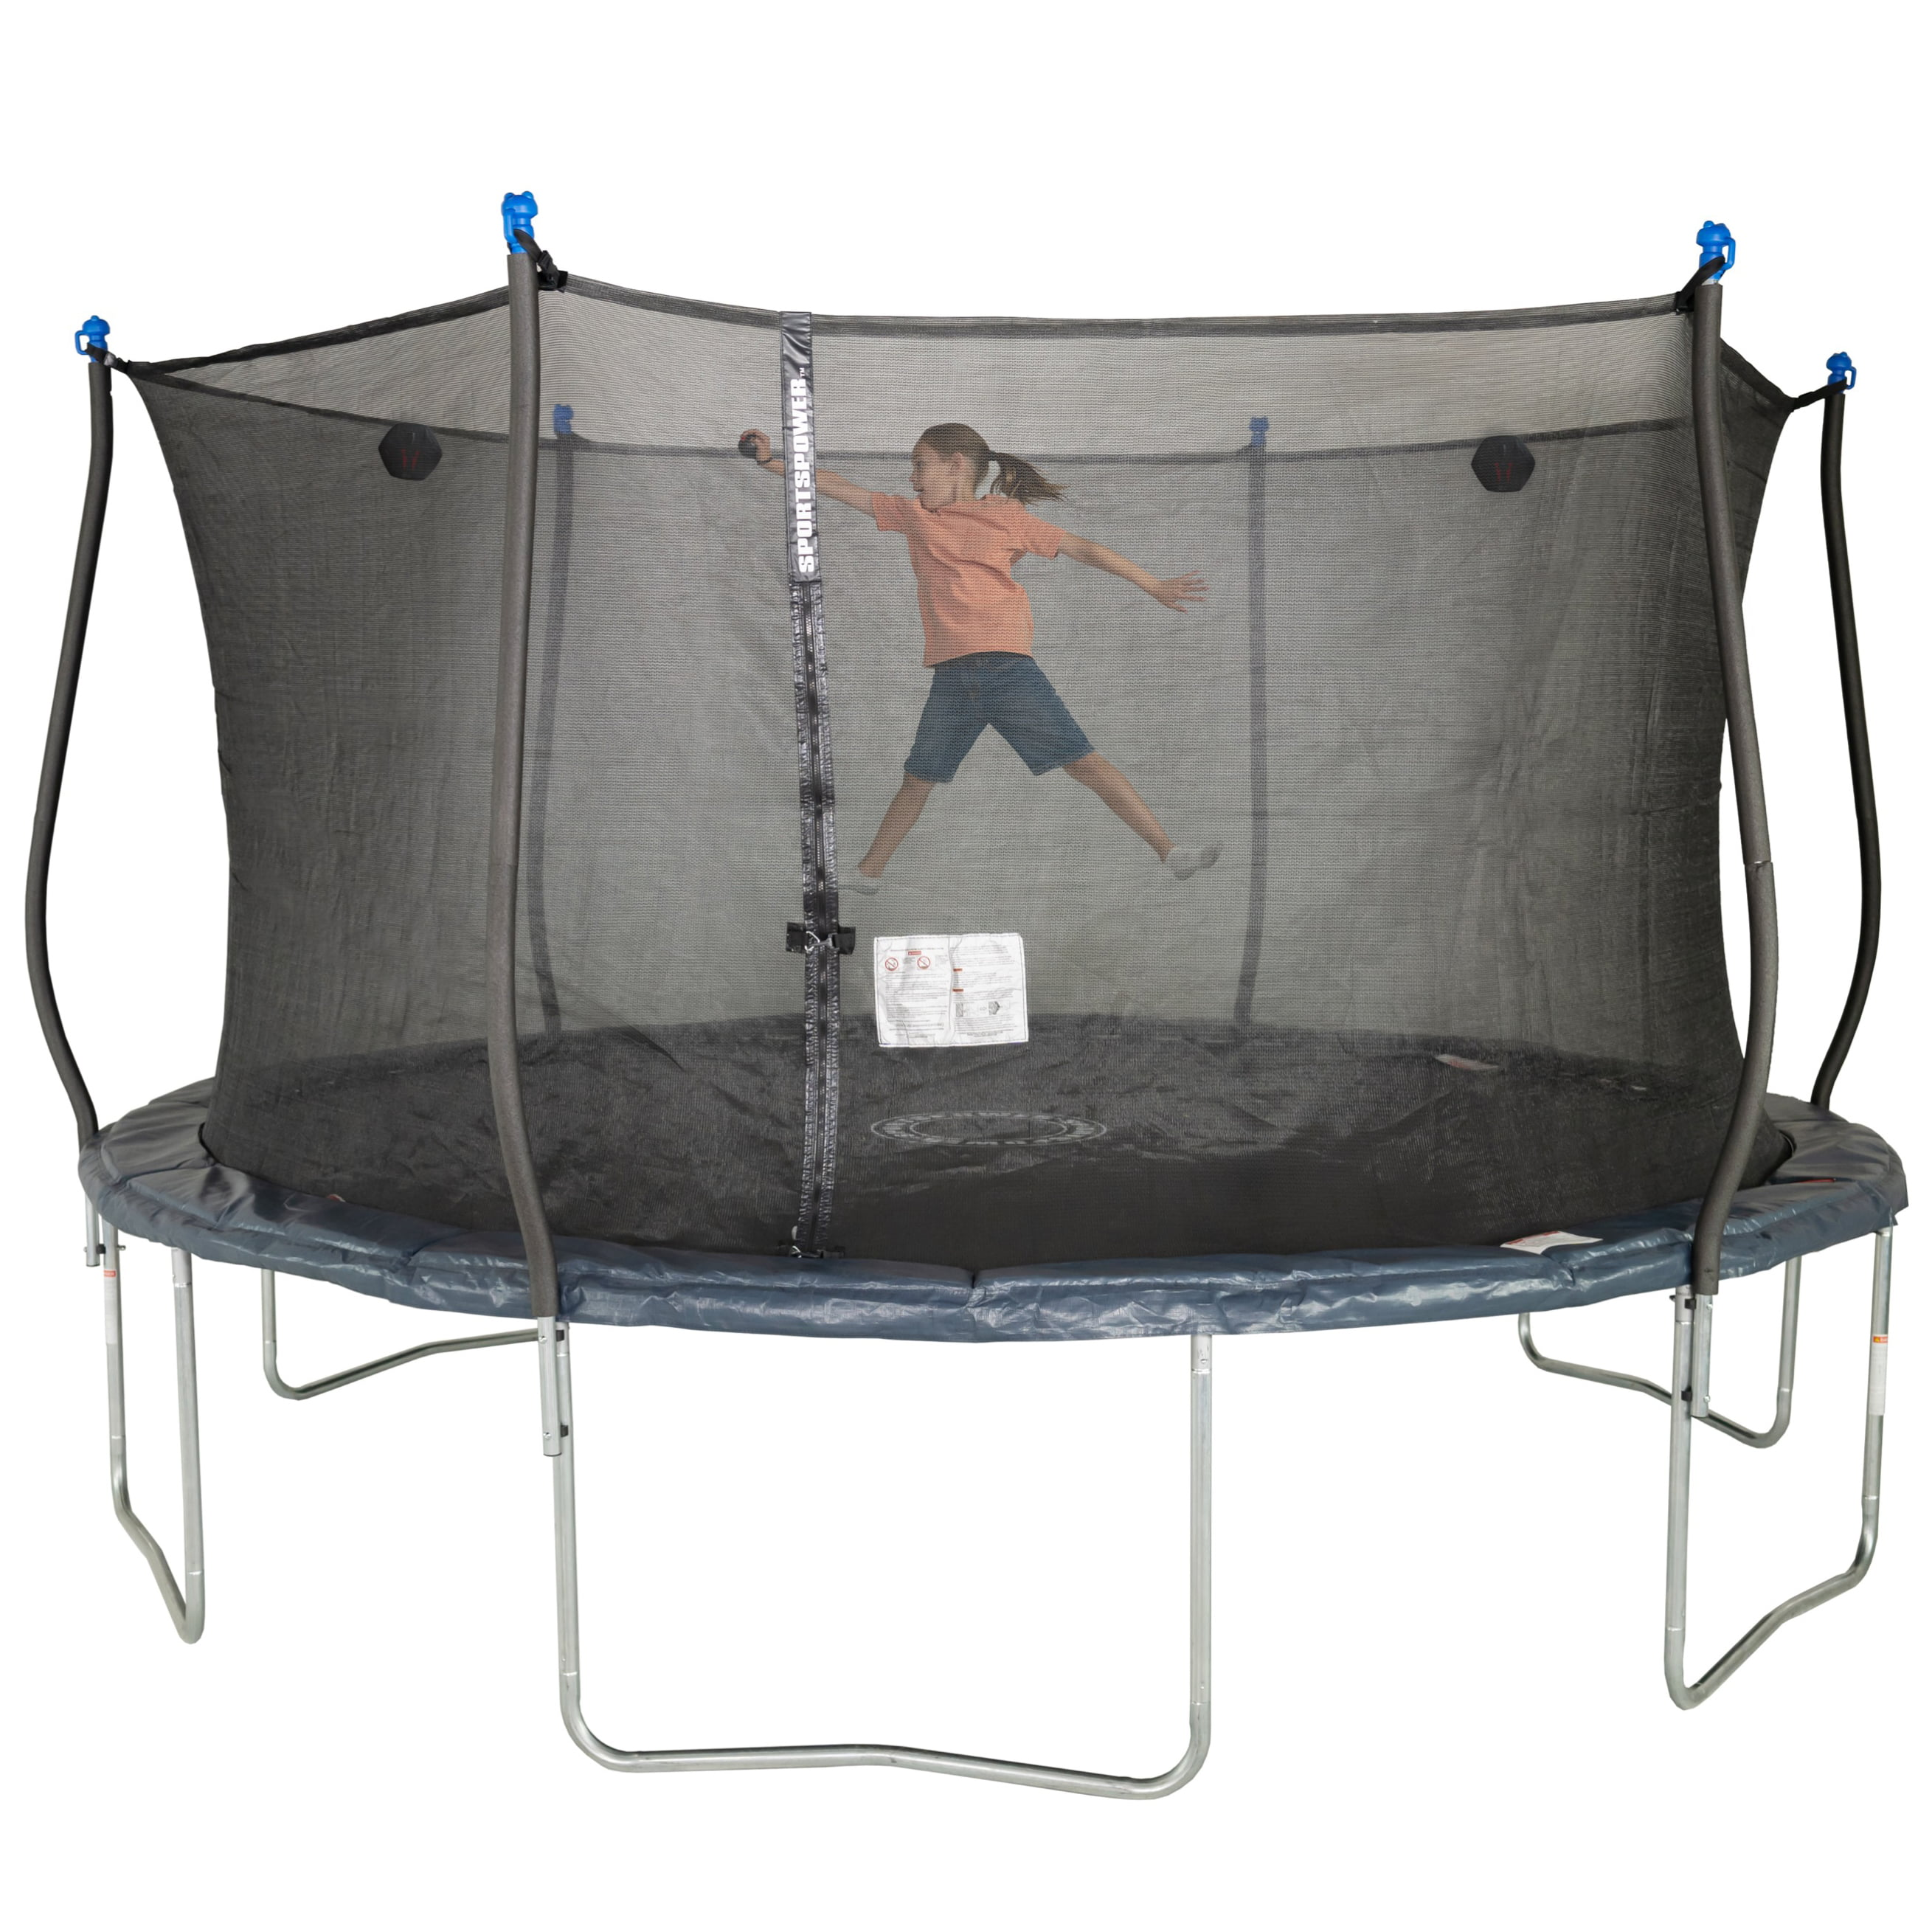 Upper Bounce Breathable Replacement Trampoline Safety Net Enclosure BouncePro for 12ft 14ft 15ft Skywalker JumpKing and Many More Net Only Walmart Tear and Weather-Resistant